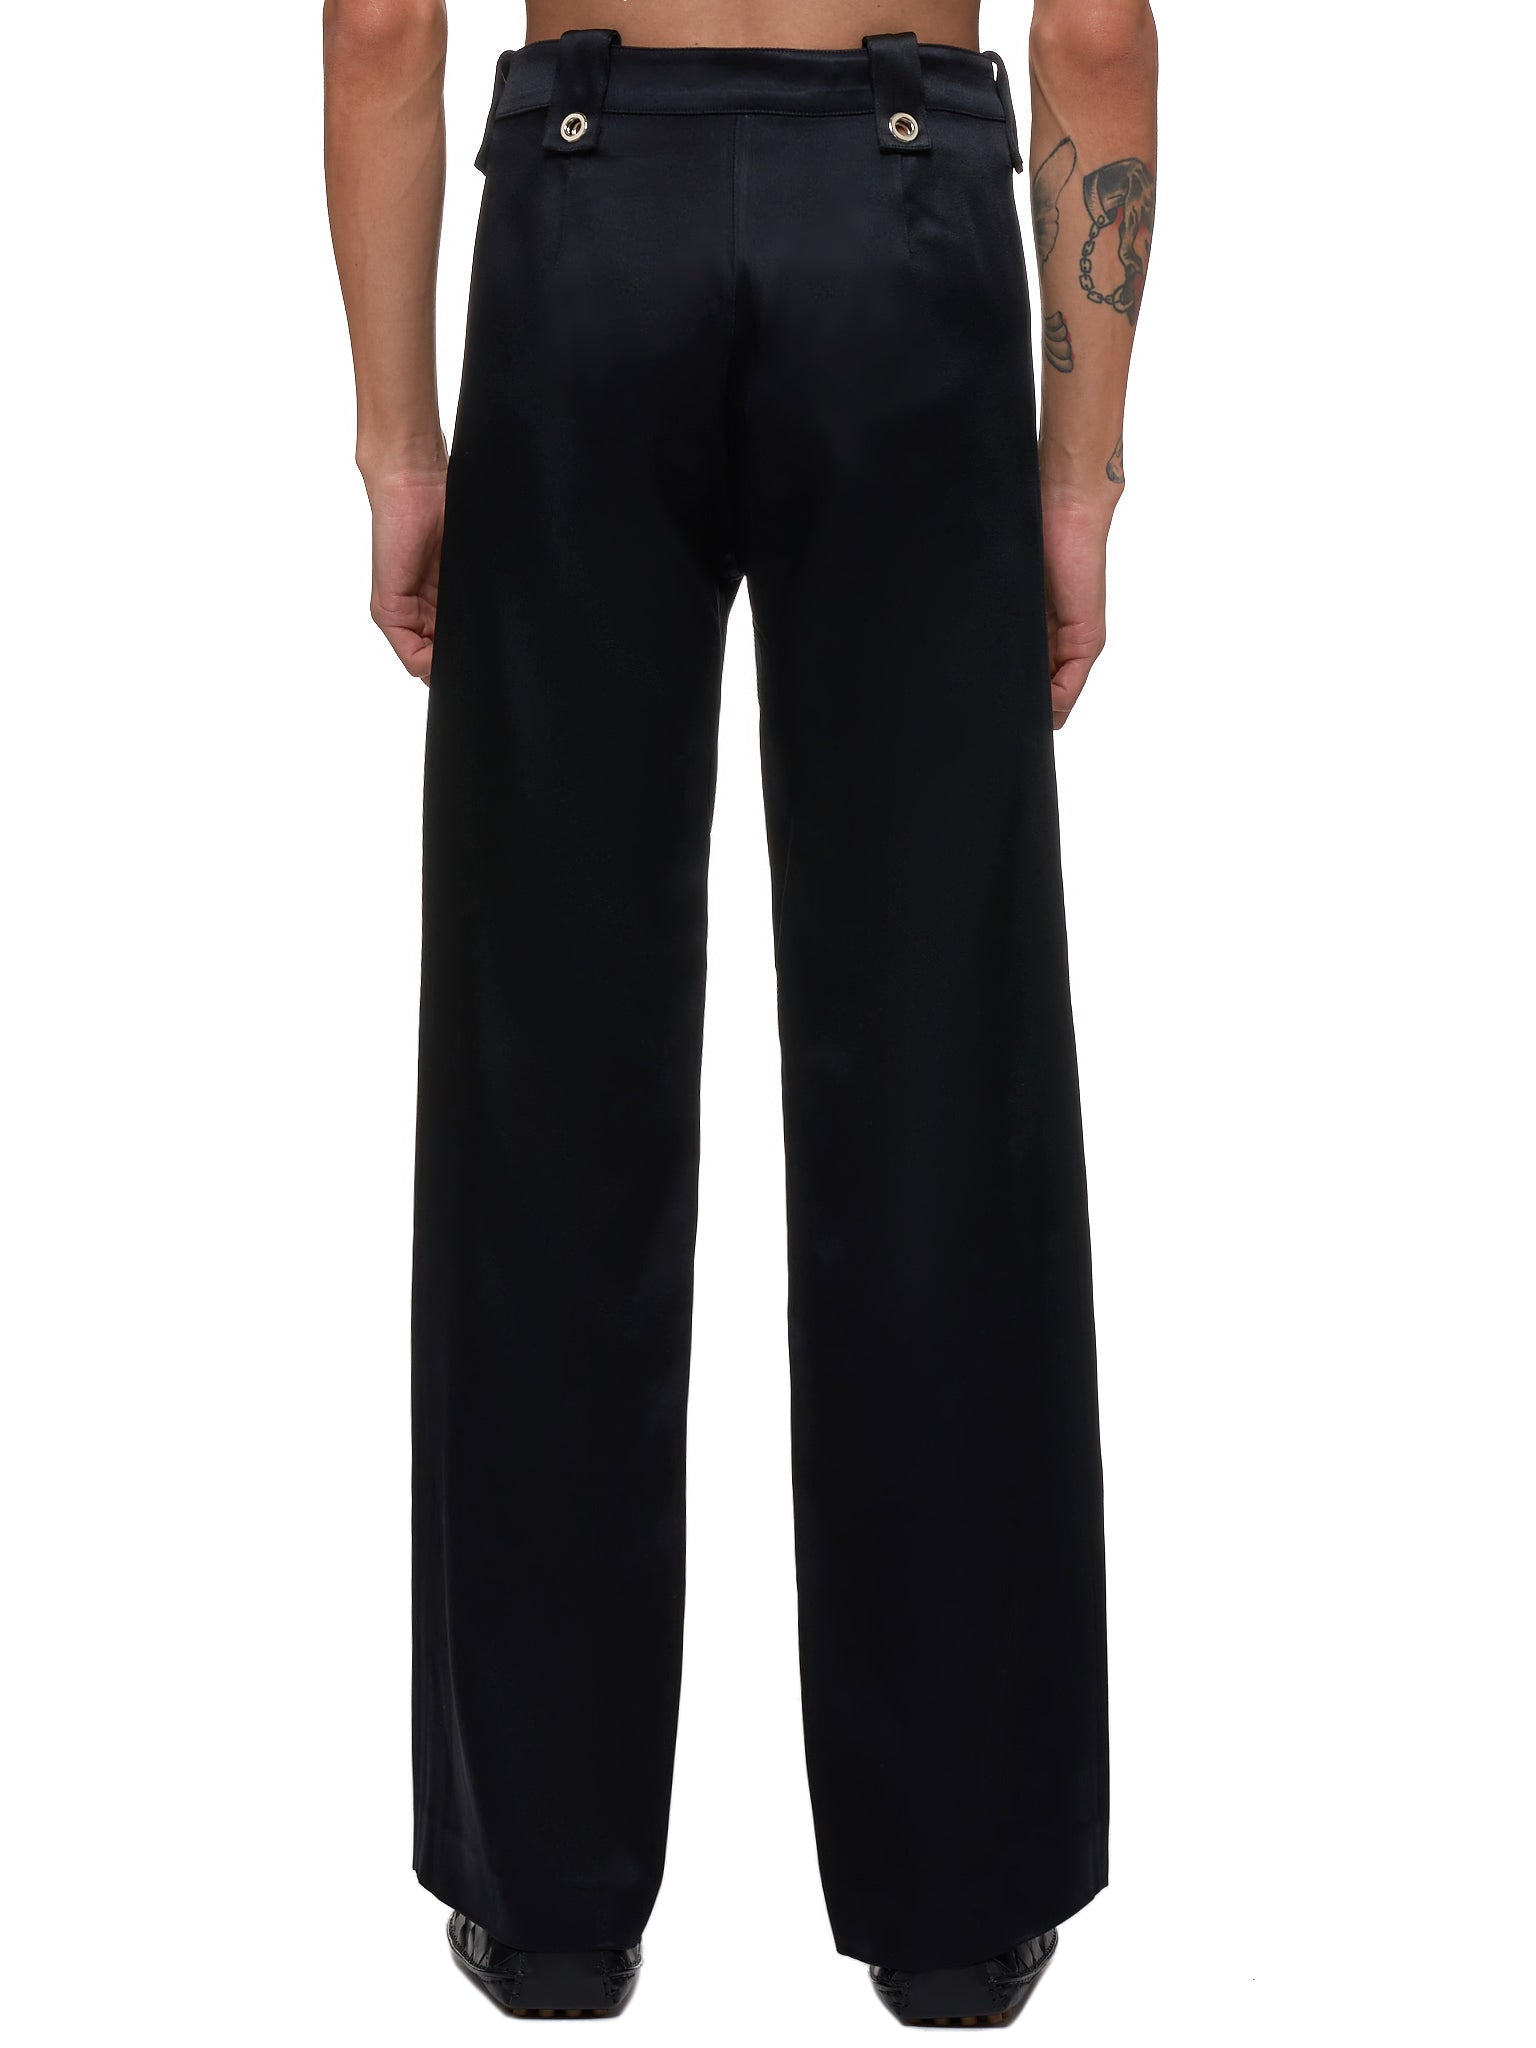 Ludovic de Saint Sernin Pants - Hlorenzo Back